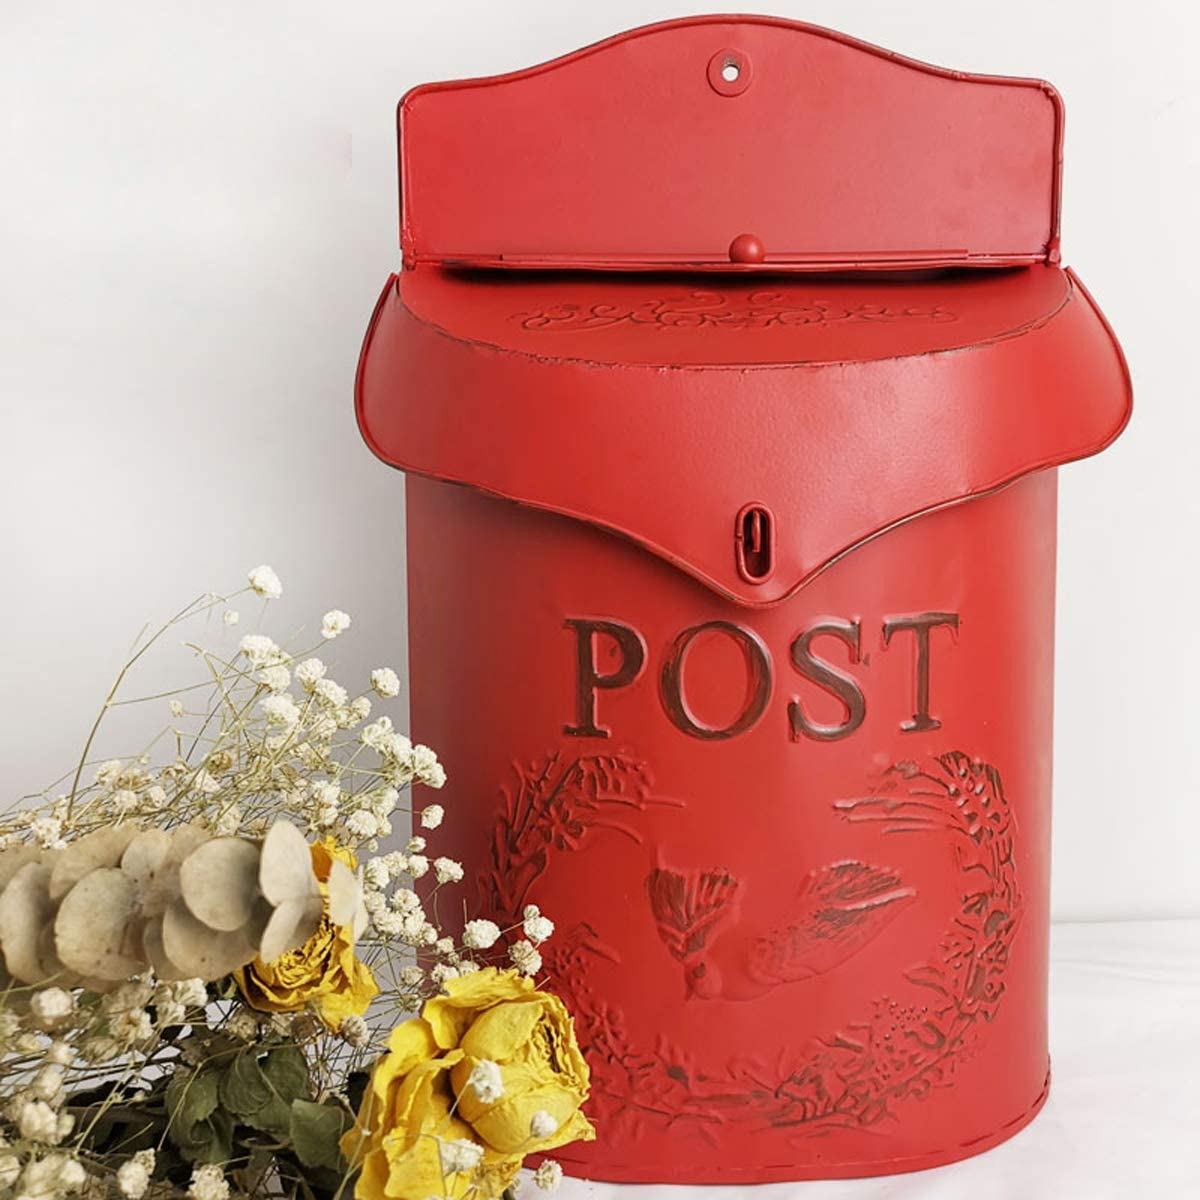 Red Wall Mount Letterbox Post Box Mailbox Suggestion Box Vintage Iron Distressed Metal Country House Outdoor Home Decoration